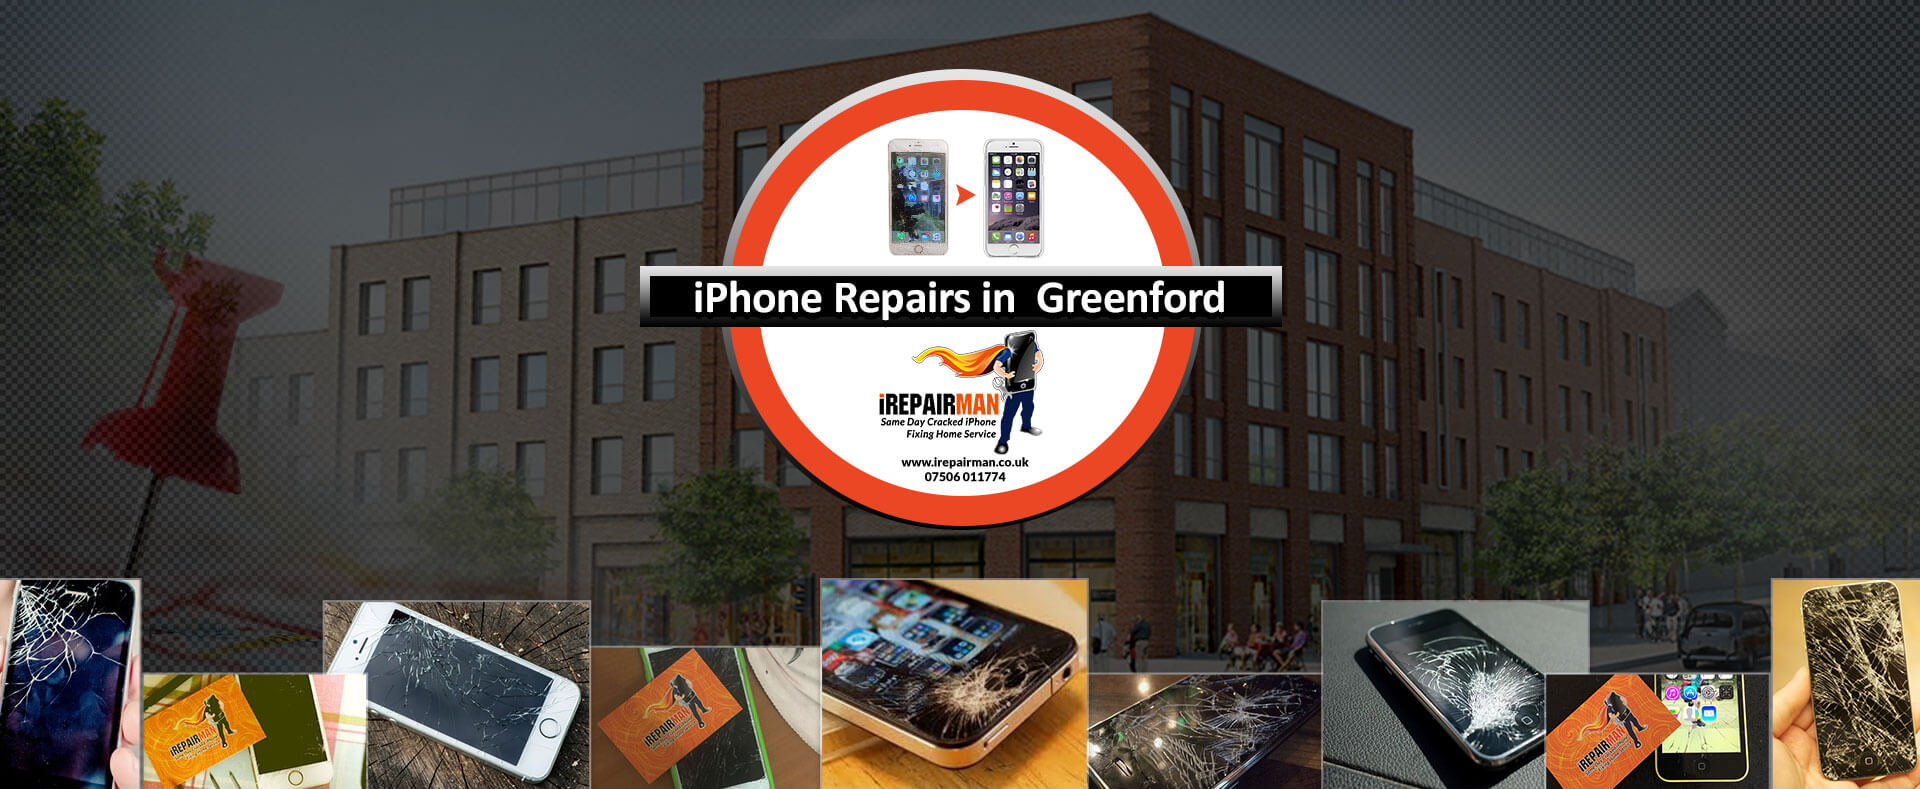 iPhone Repairs in Greenford